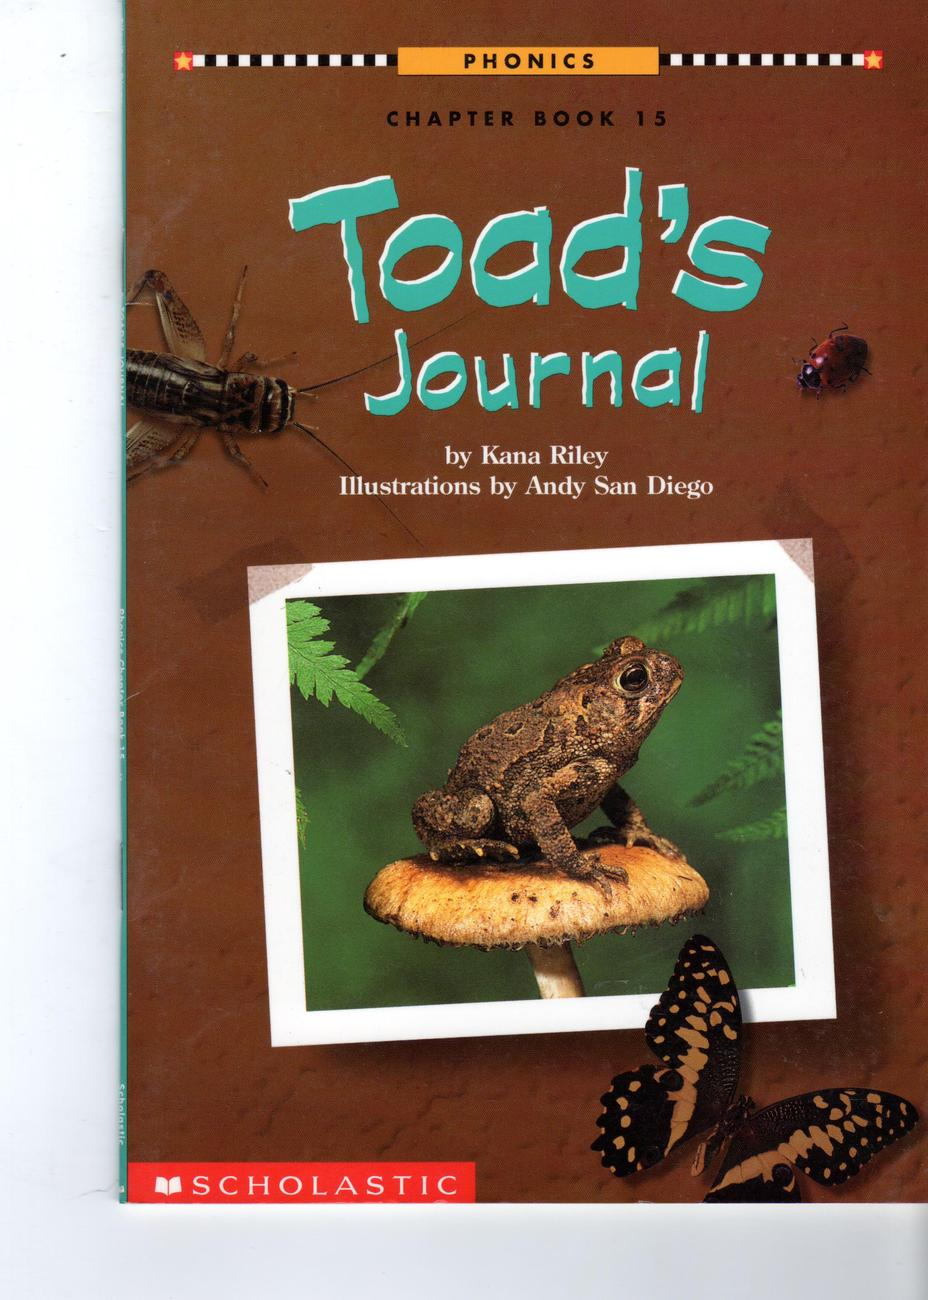 Primary image for Toad's Journal - Phonics Chapter Book